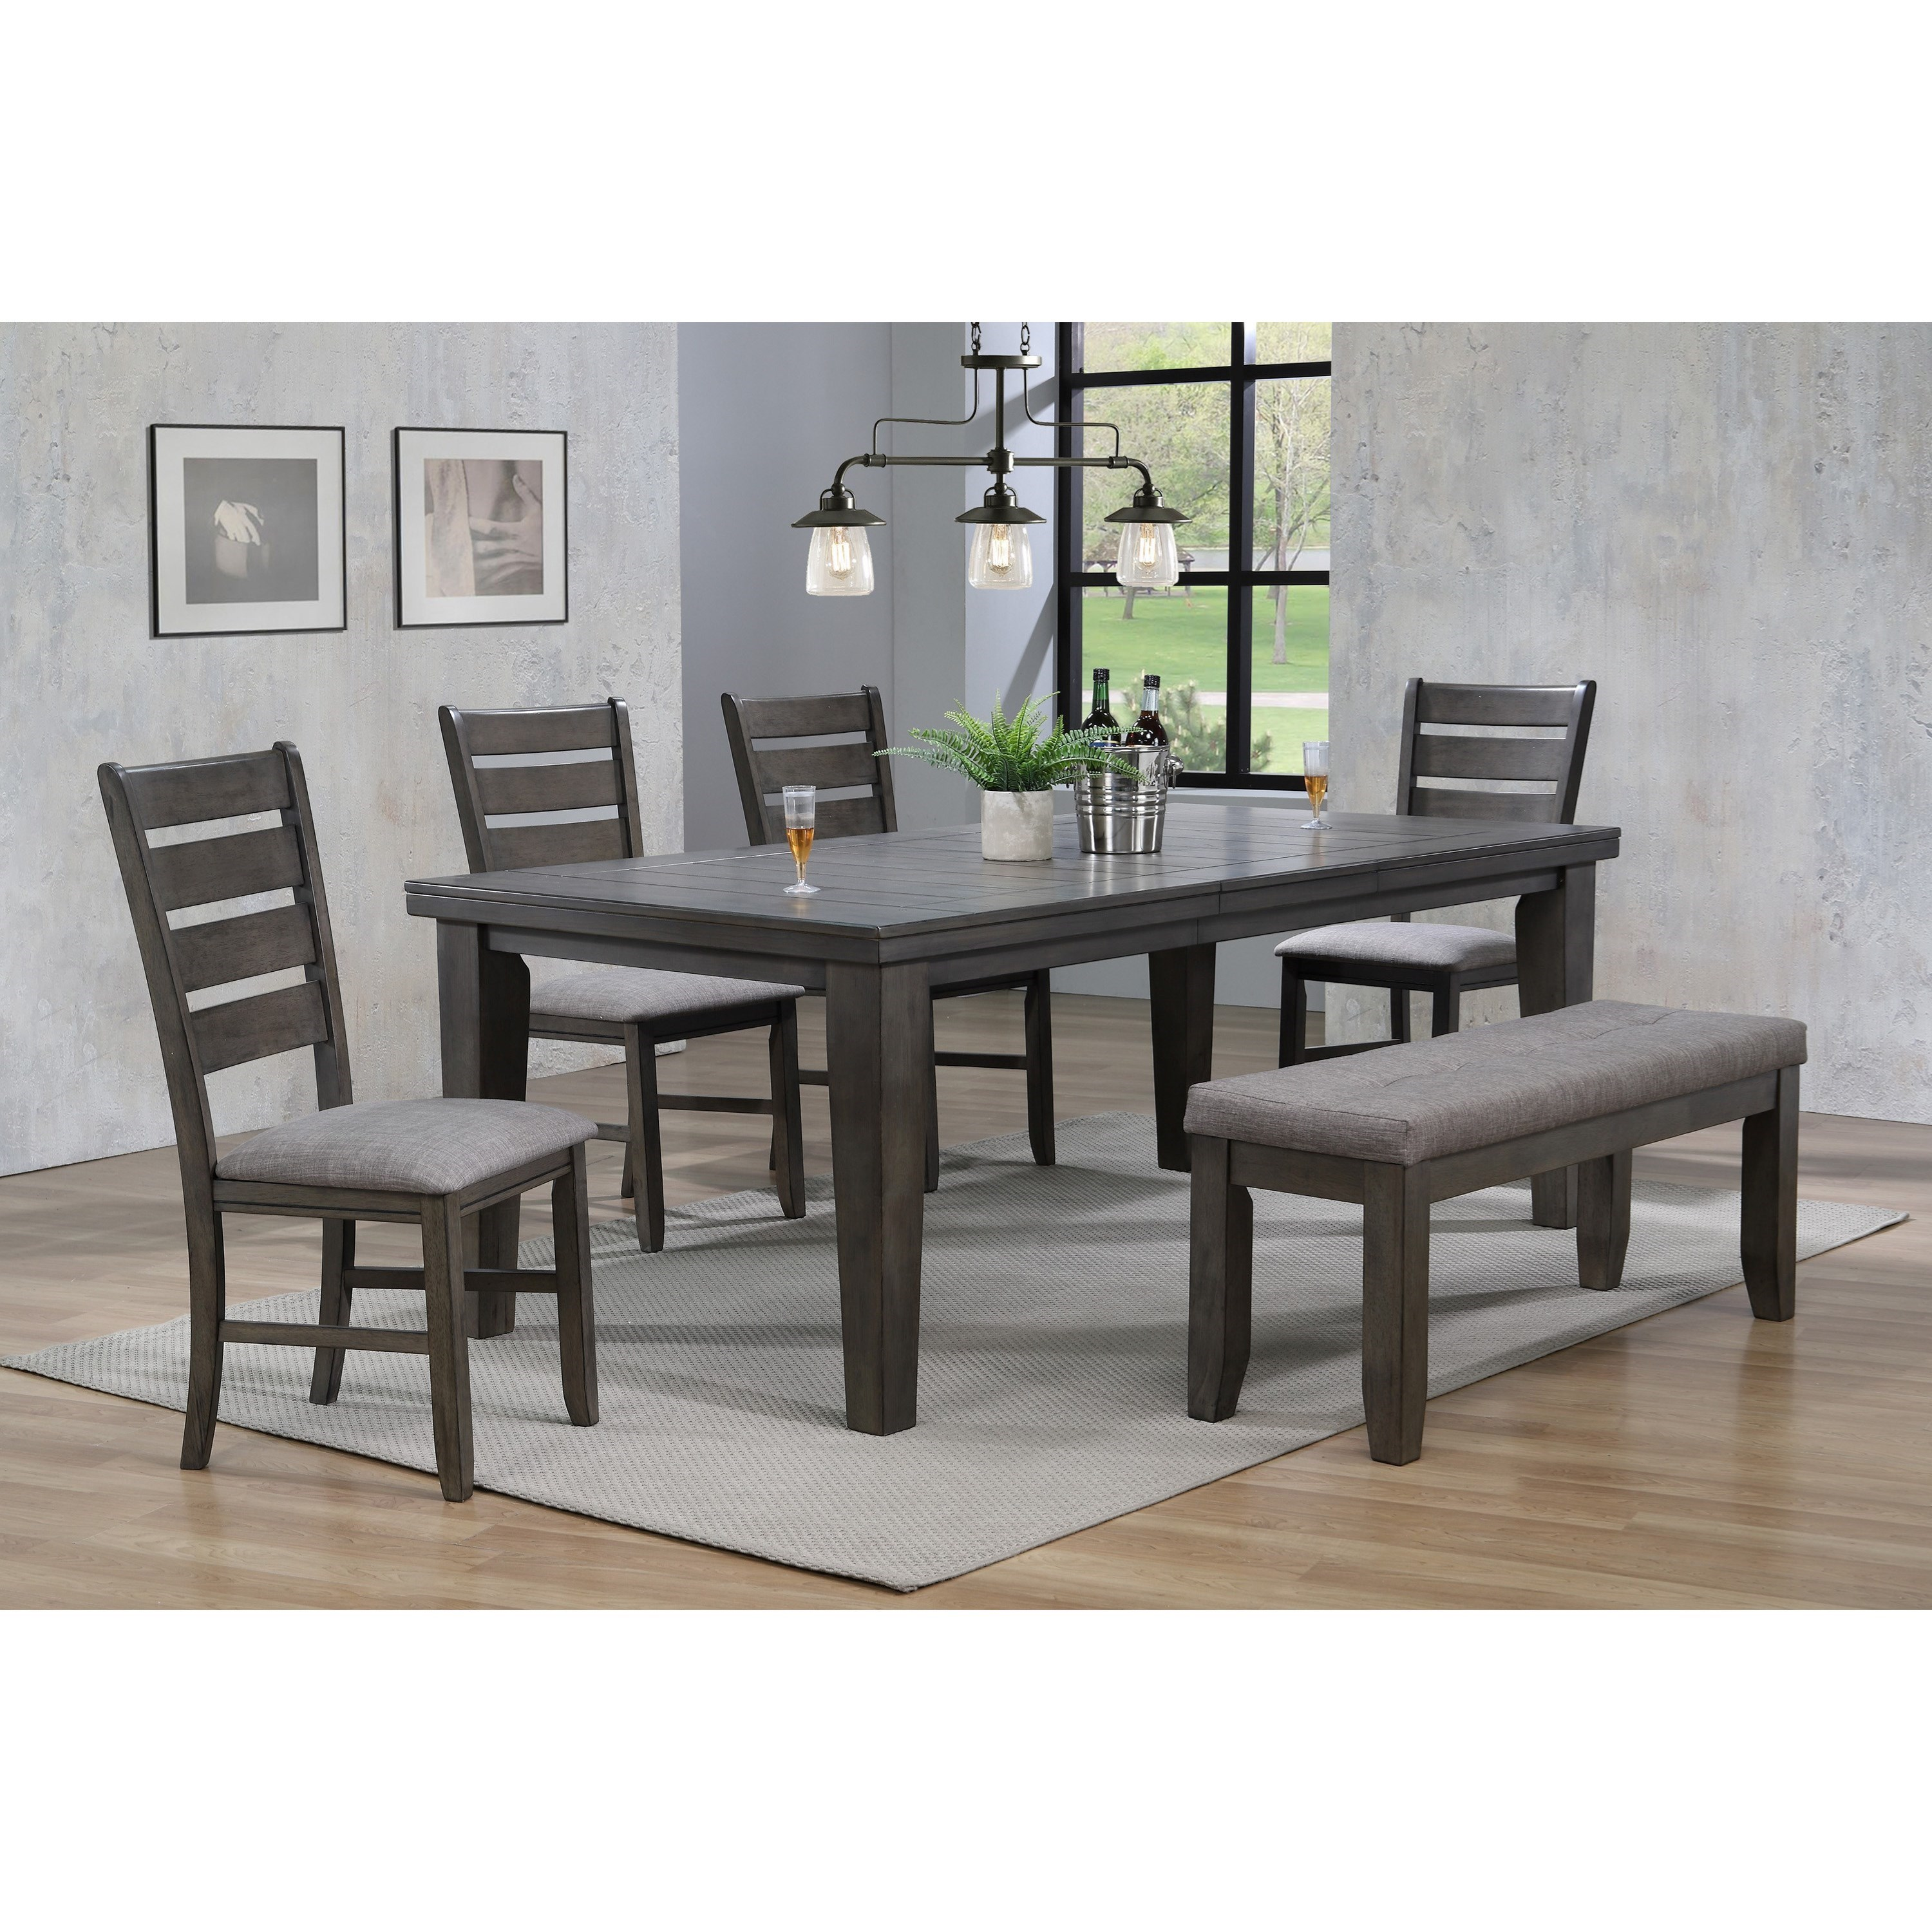 Crown Mark Bardstown6 Piece Dining Set W/ 4 Chairs U0026 Bench ...